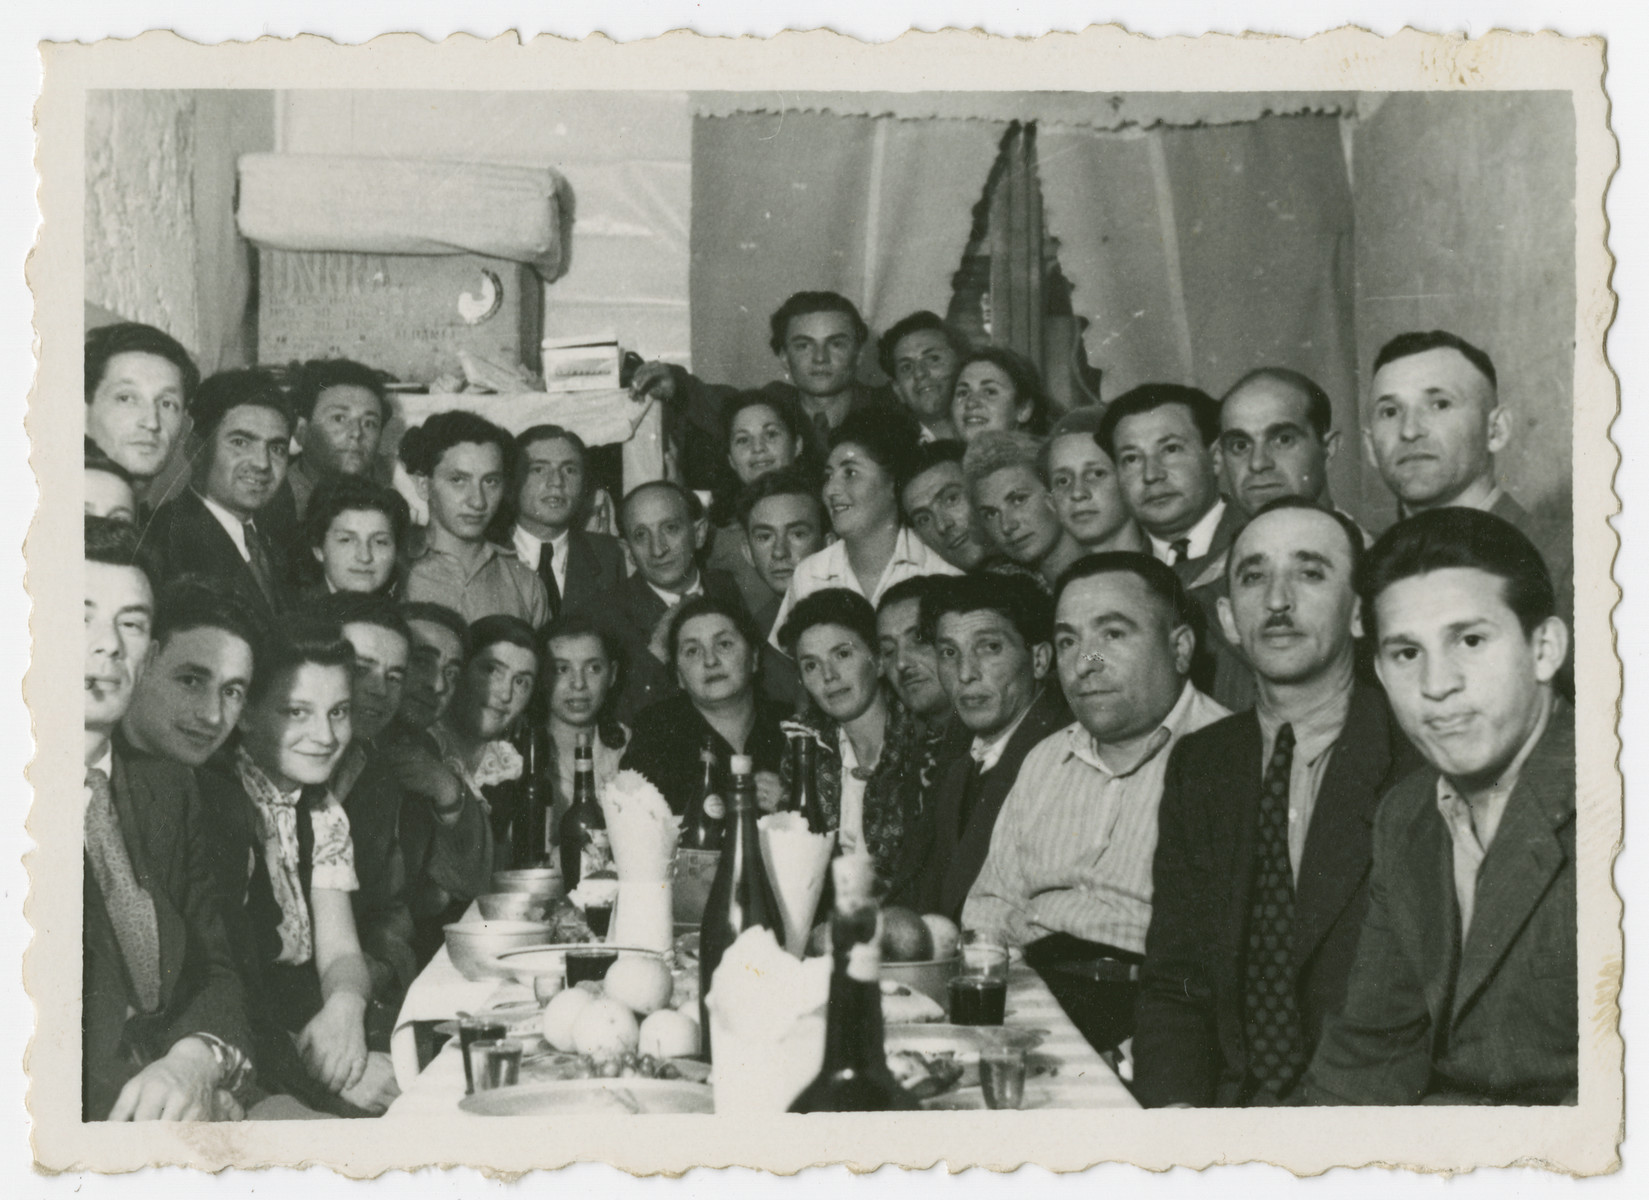 Jewish DPs attend a going-away party in the Bari camp.